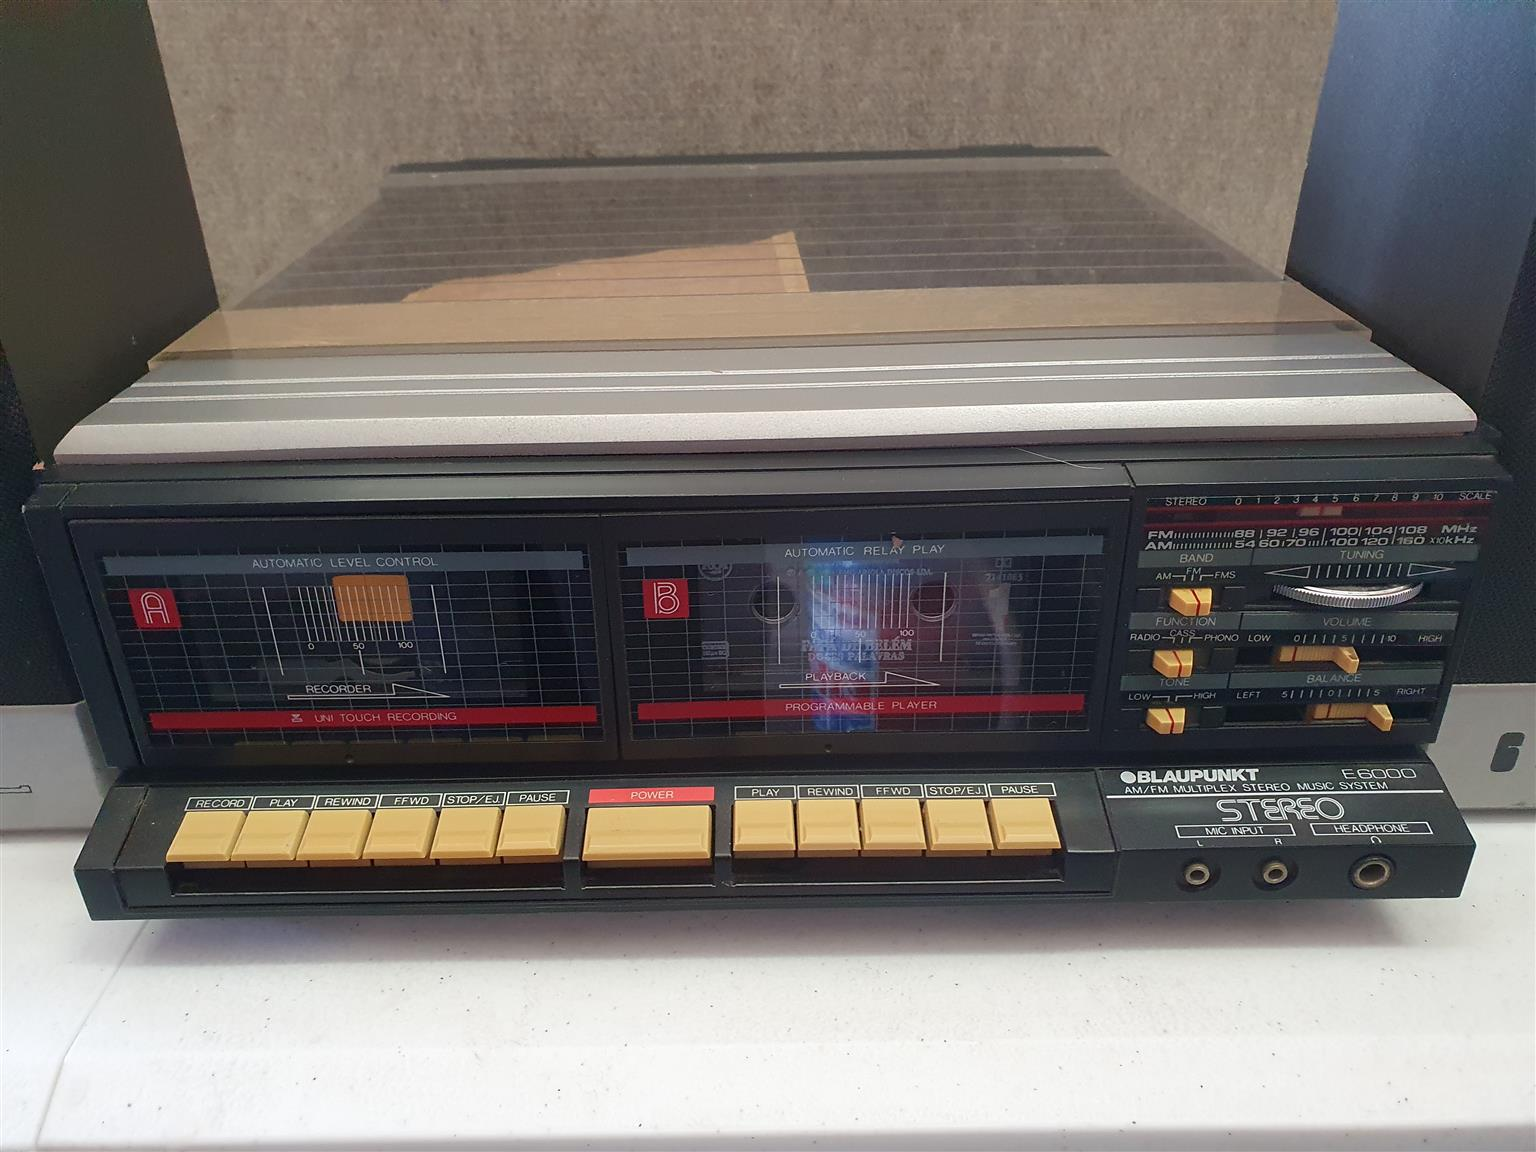 BLAUPUNKT AM/FM Stereo Music System E6100  Radio, Cassette Player And Turntable